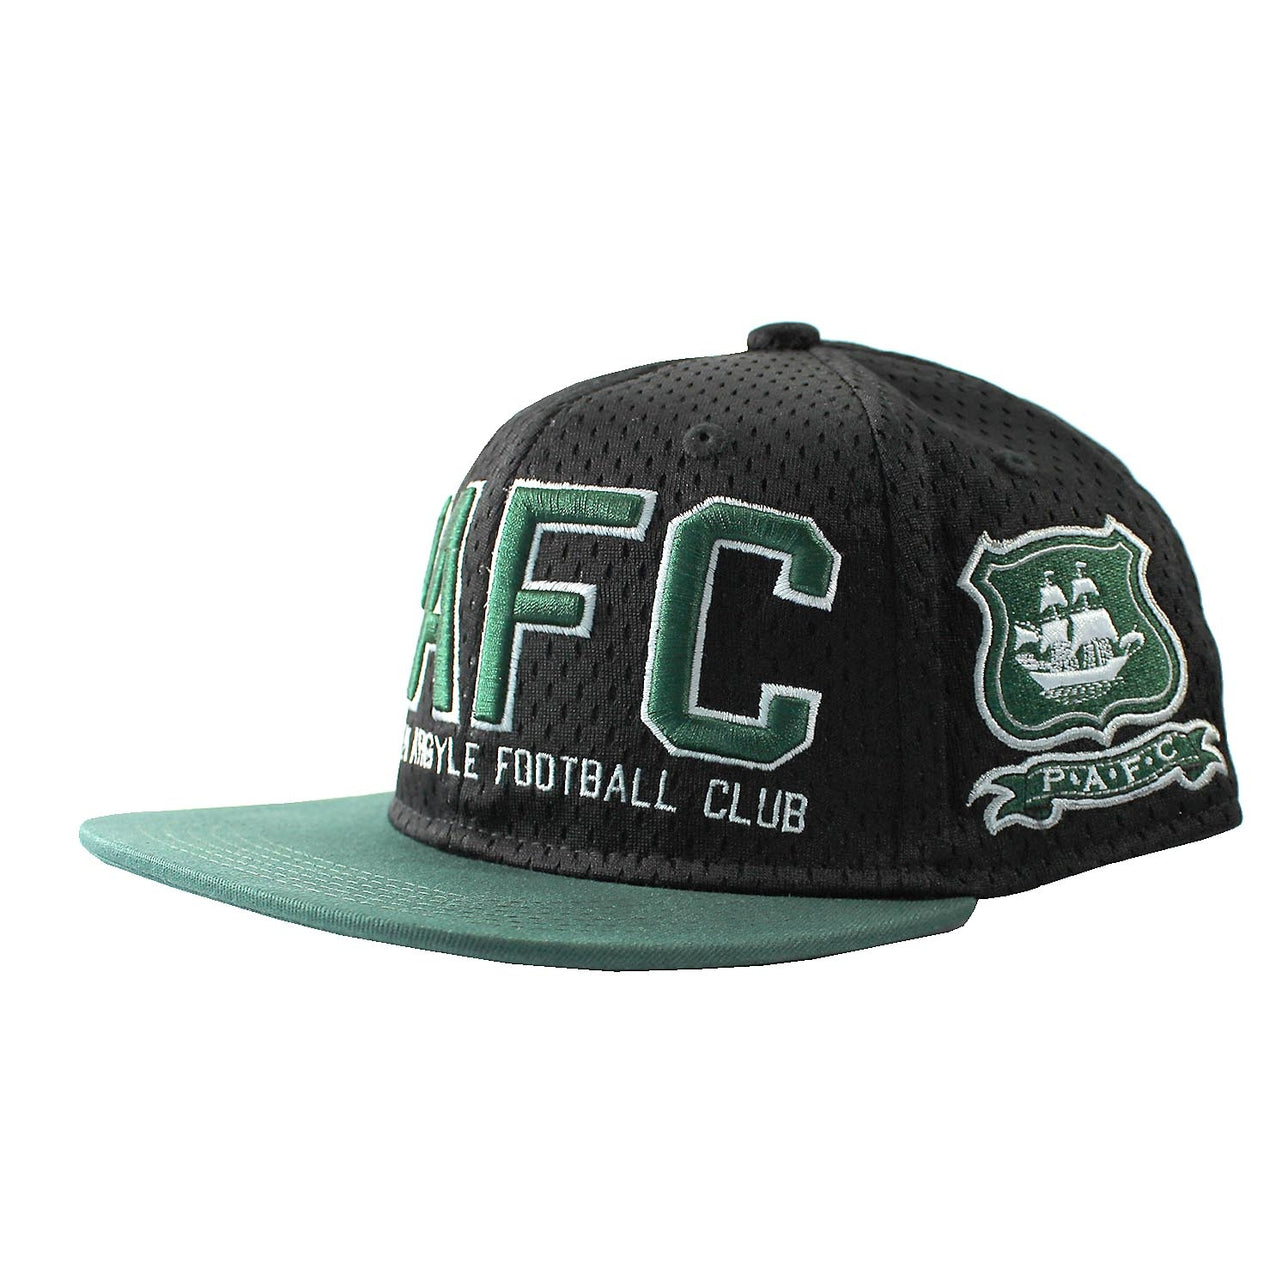 PAFC Snap-Back Cap